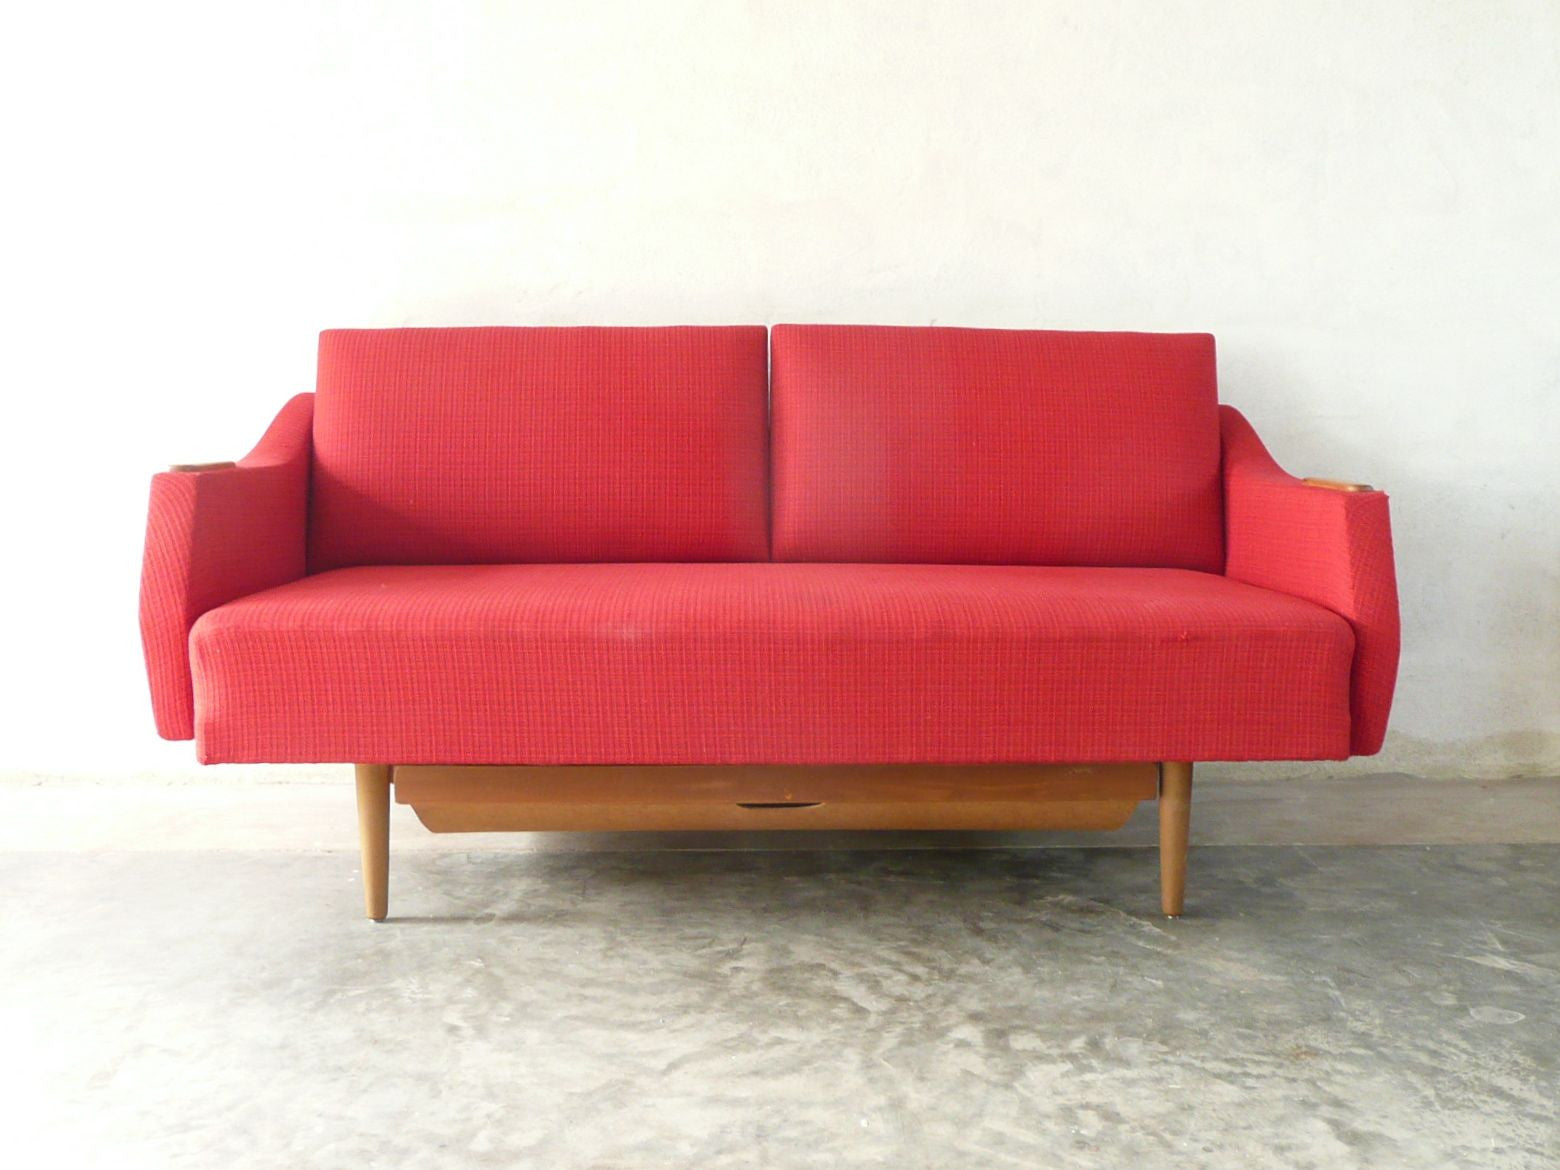 New price: Sofabed